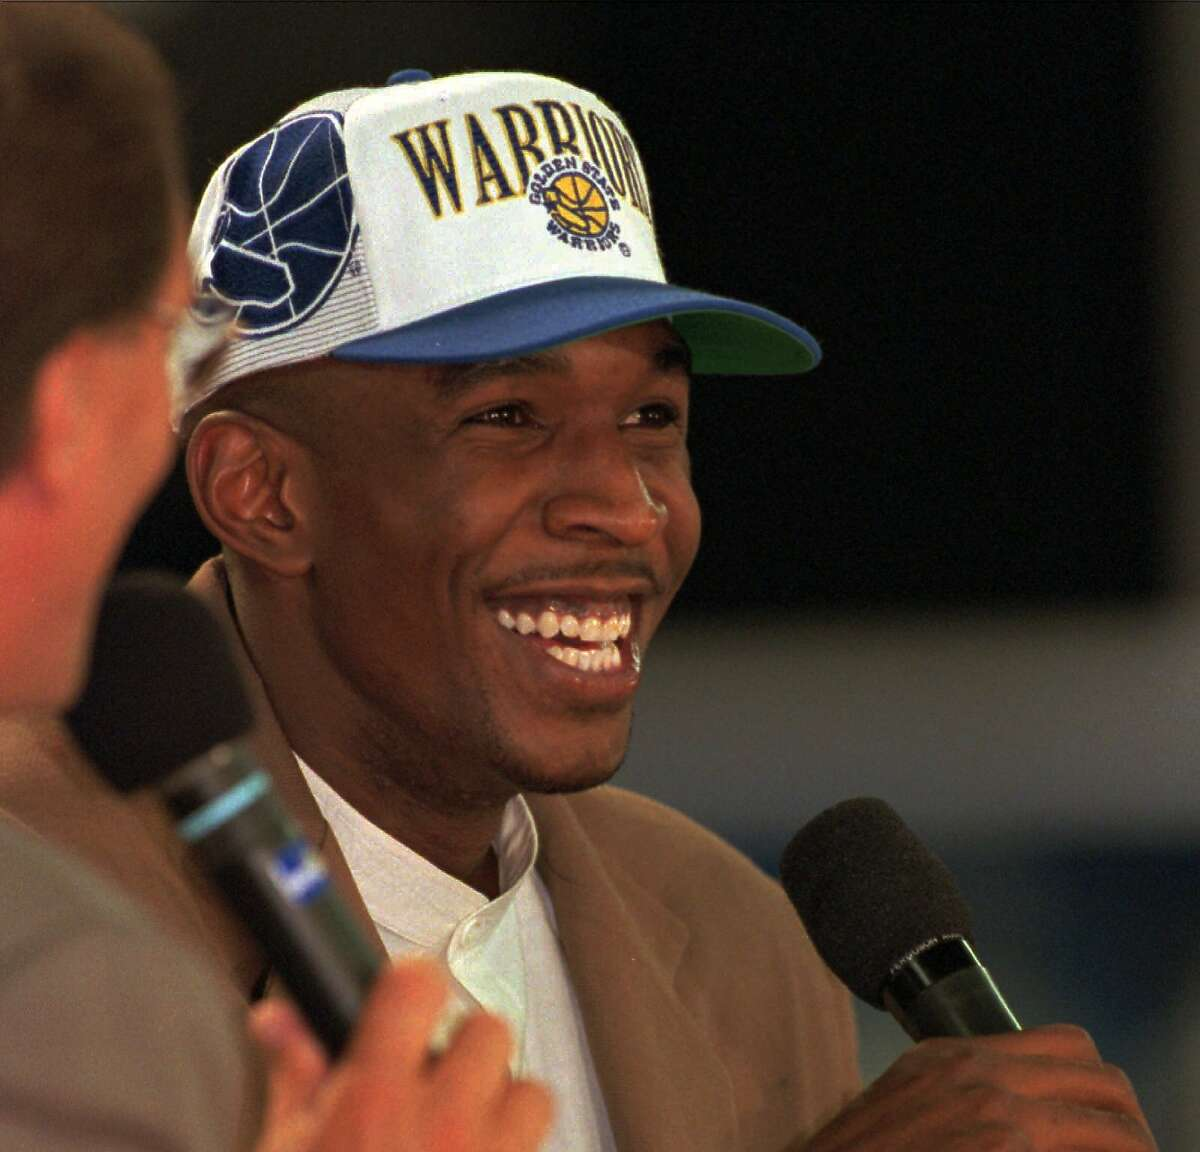 Golden State Warriors' Joe Smith of Maryland smiles during a TV interview after being picked first in the NBA draft Wednesday, June 28, 1995, at SkyDome in Toronto. (AP Photo/Bill Sikes)